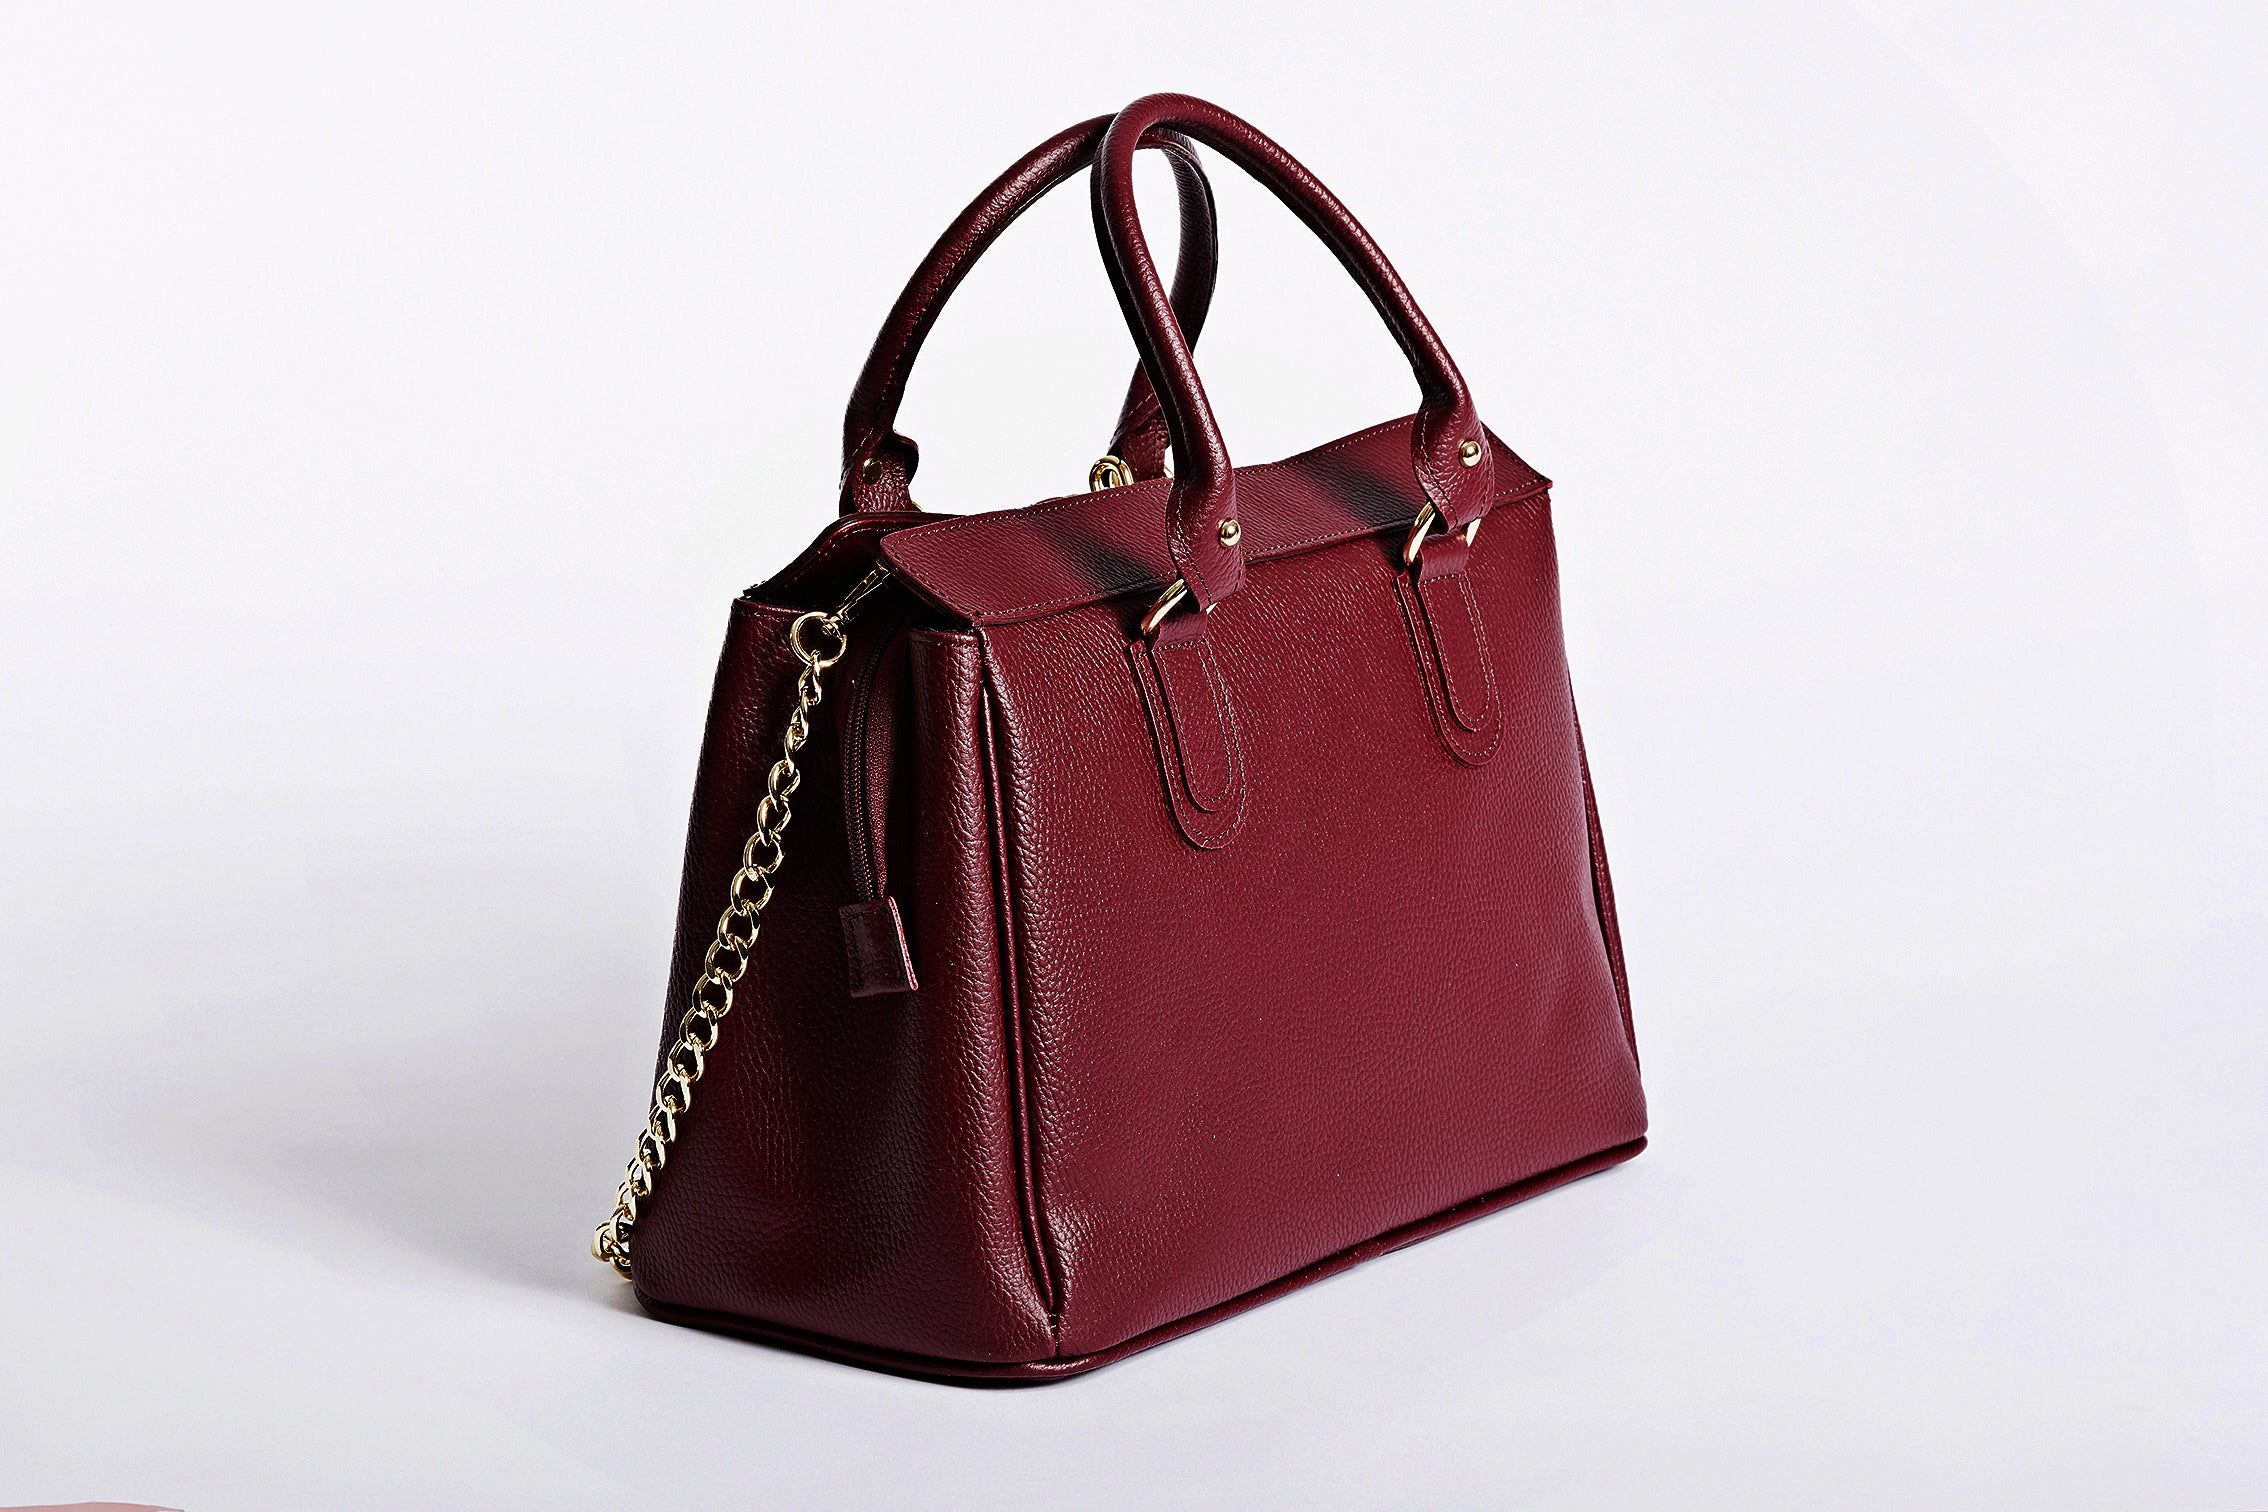 Ruby red Versatile bag in trunk. Stylish work and everyday handbag